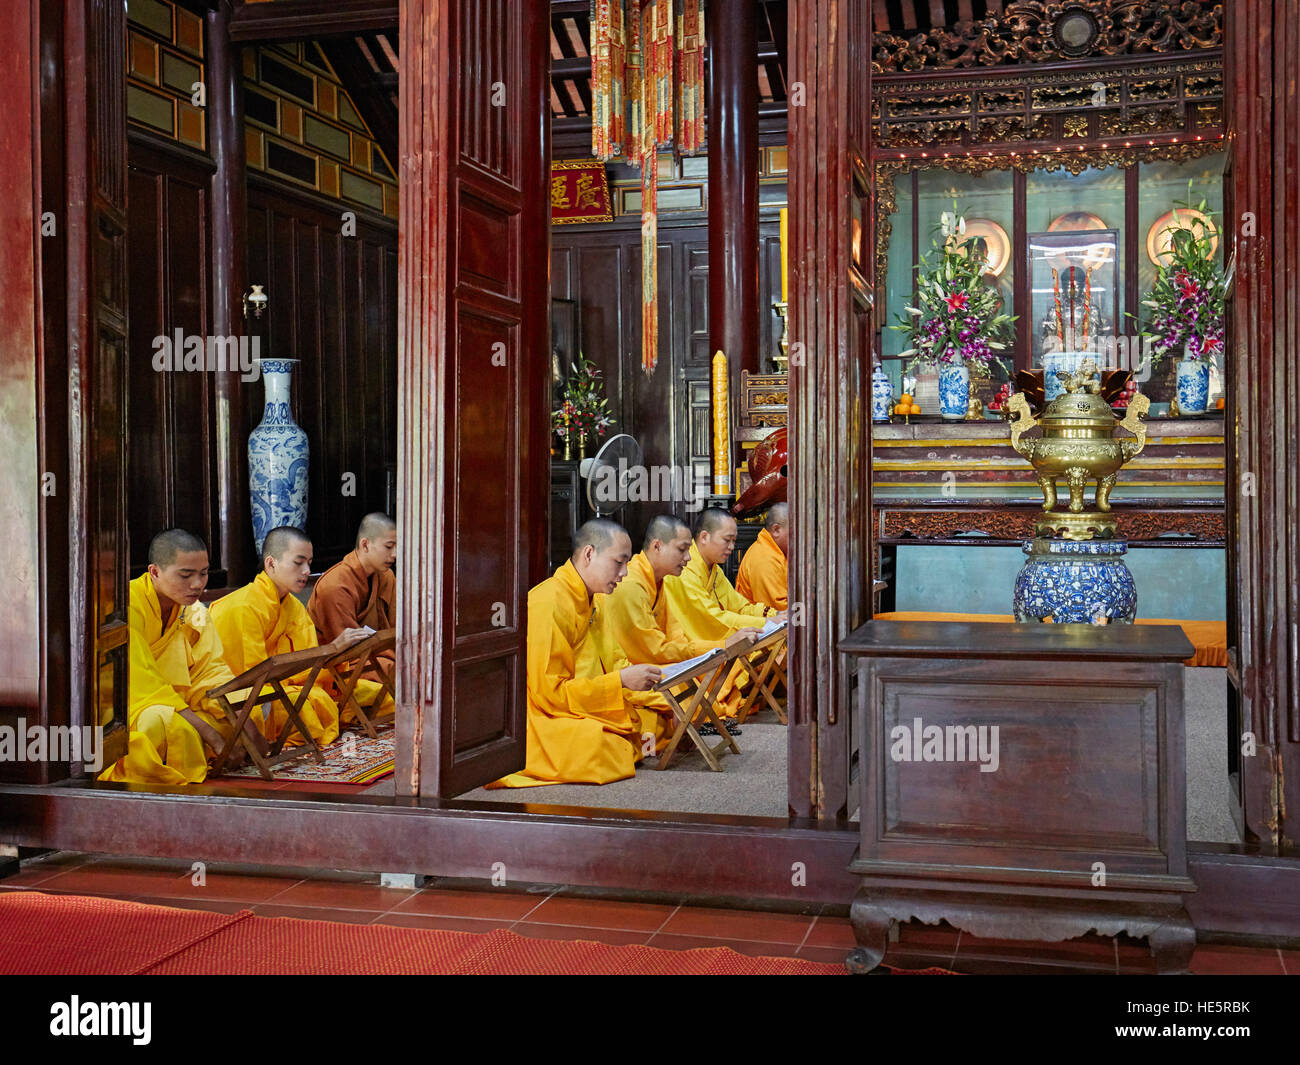 Buddhist monks at the morning prayer. Thien Mu Pagoda, Hue, Vietnam. - Stock Image